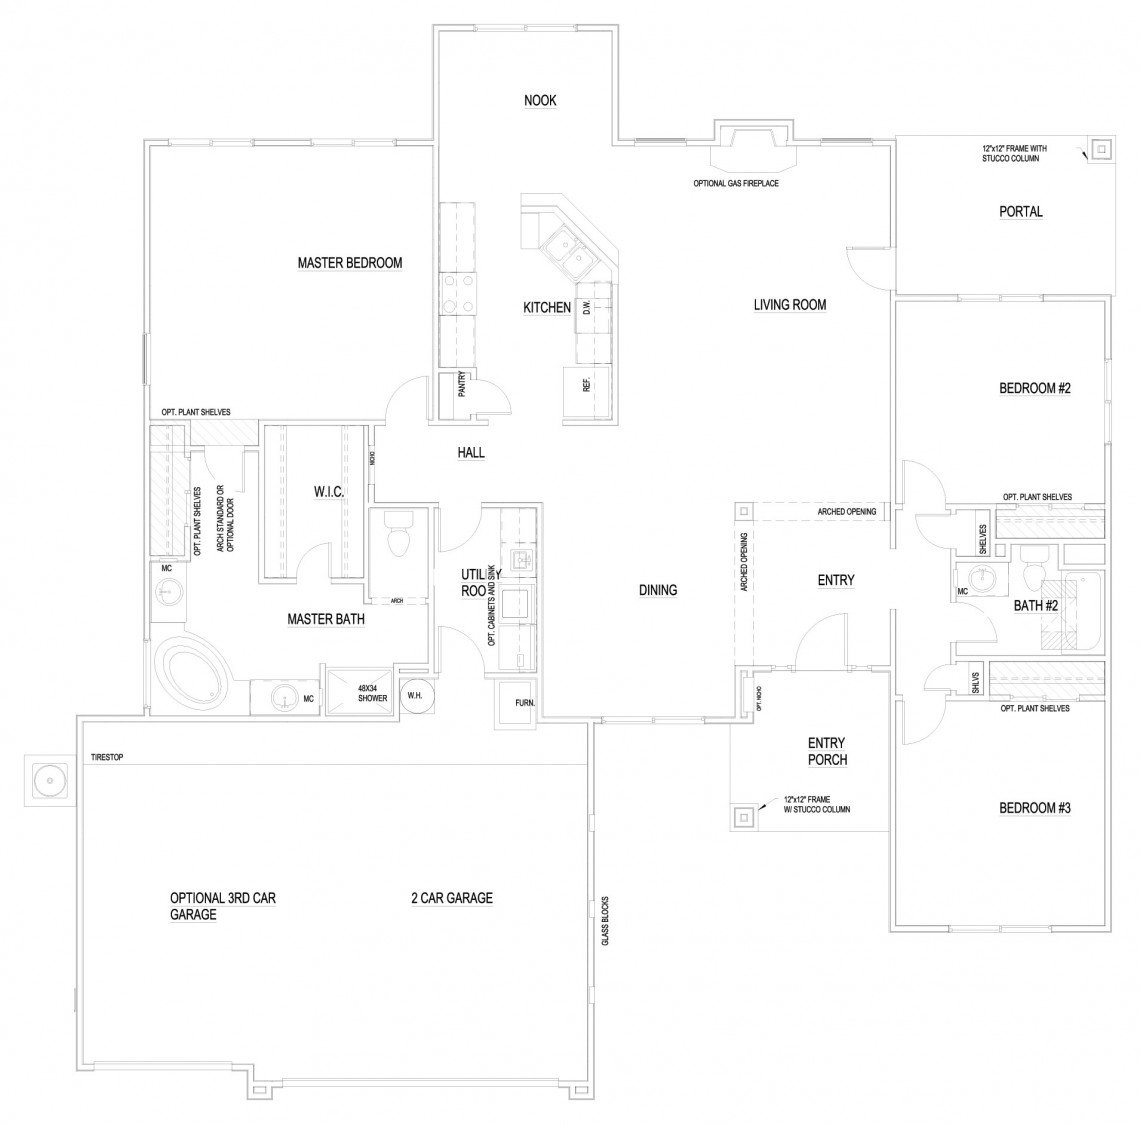 Kachina Floorplan - 1,958 sq ft